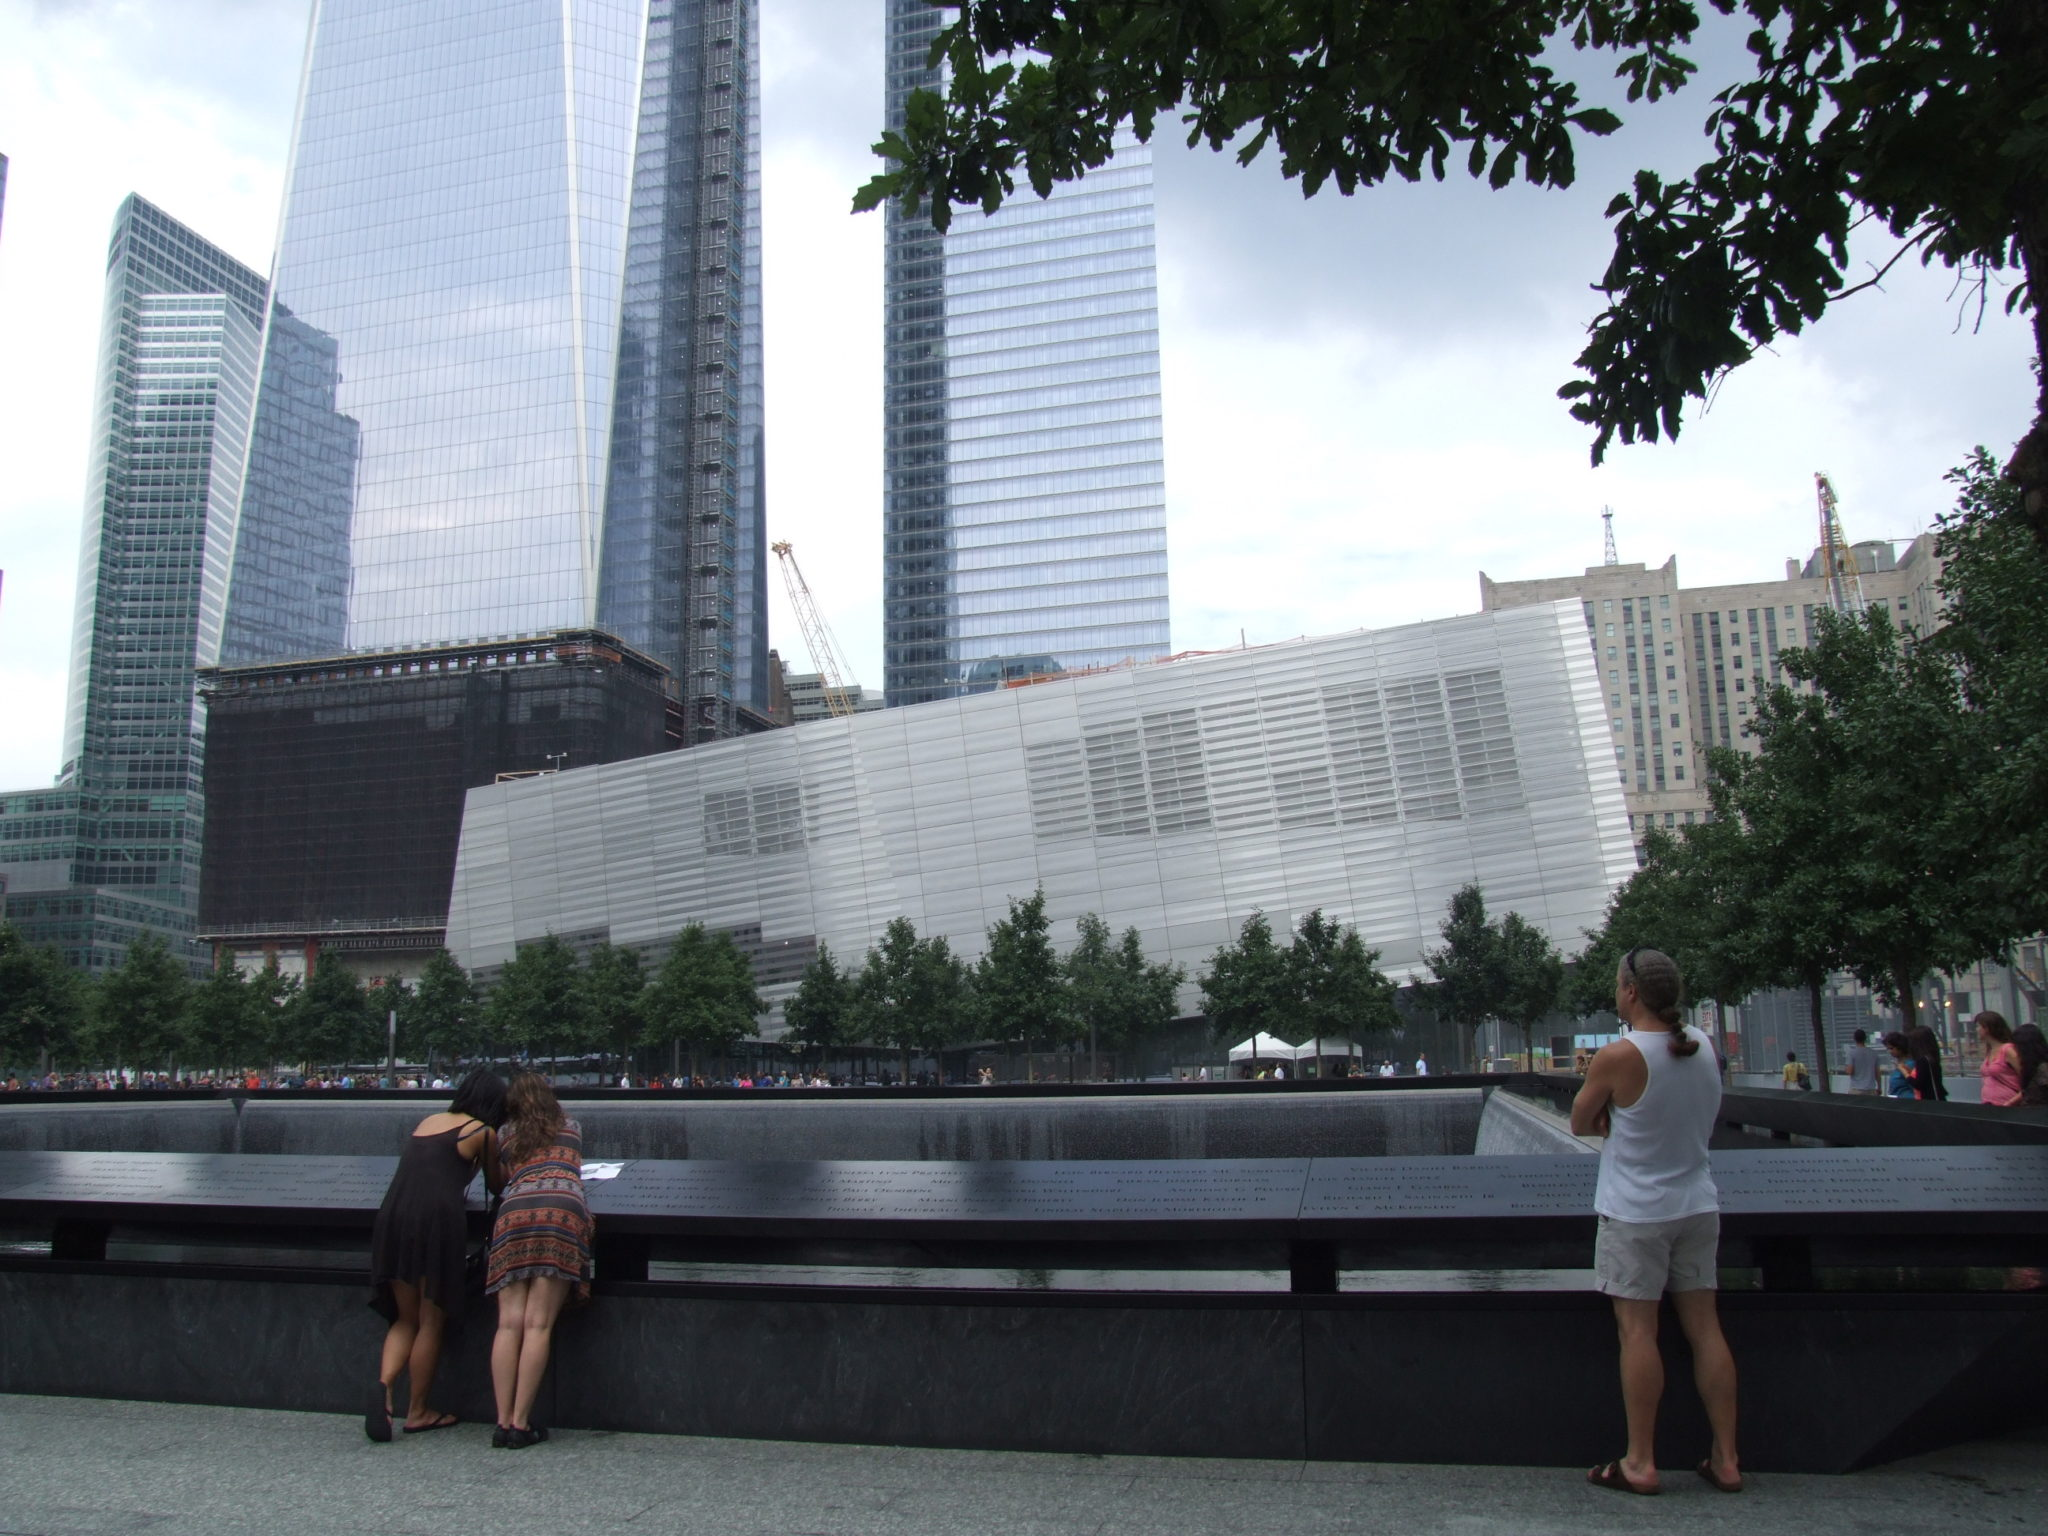 This is the 9/11 museum - it won't be ready until 2013 or 2014...depending on the politics in New York. It is meant to represent the rebuilding.